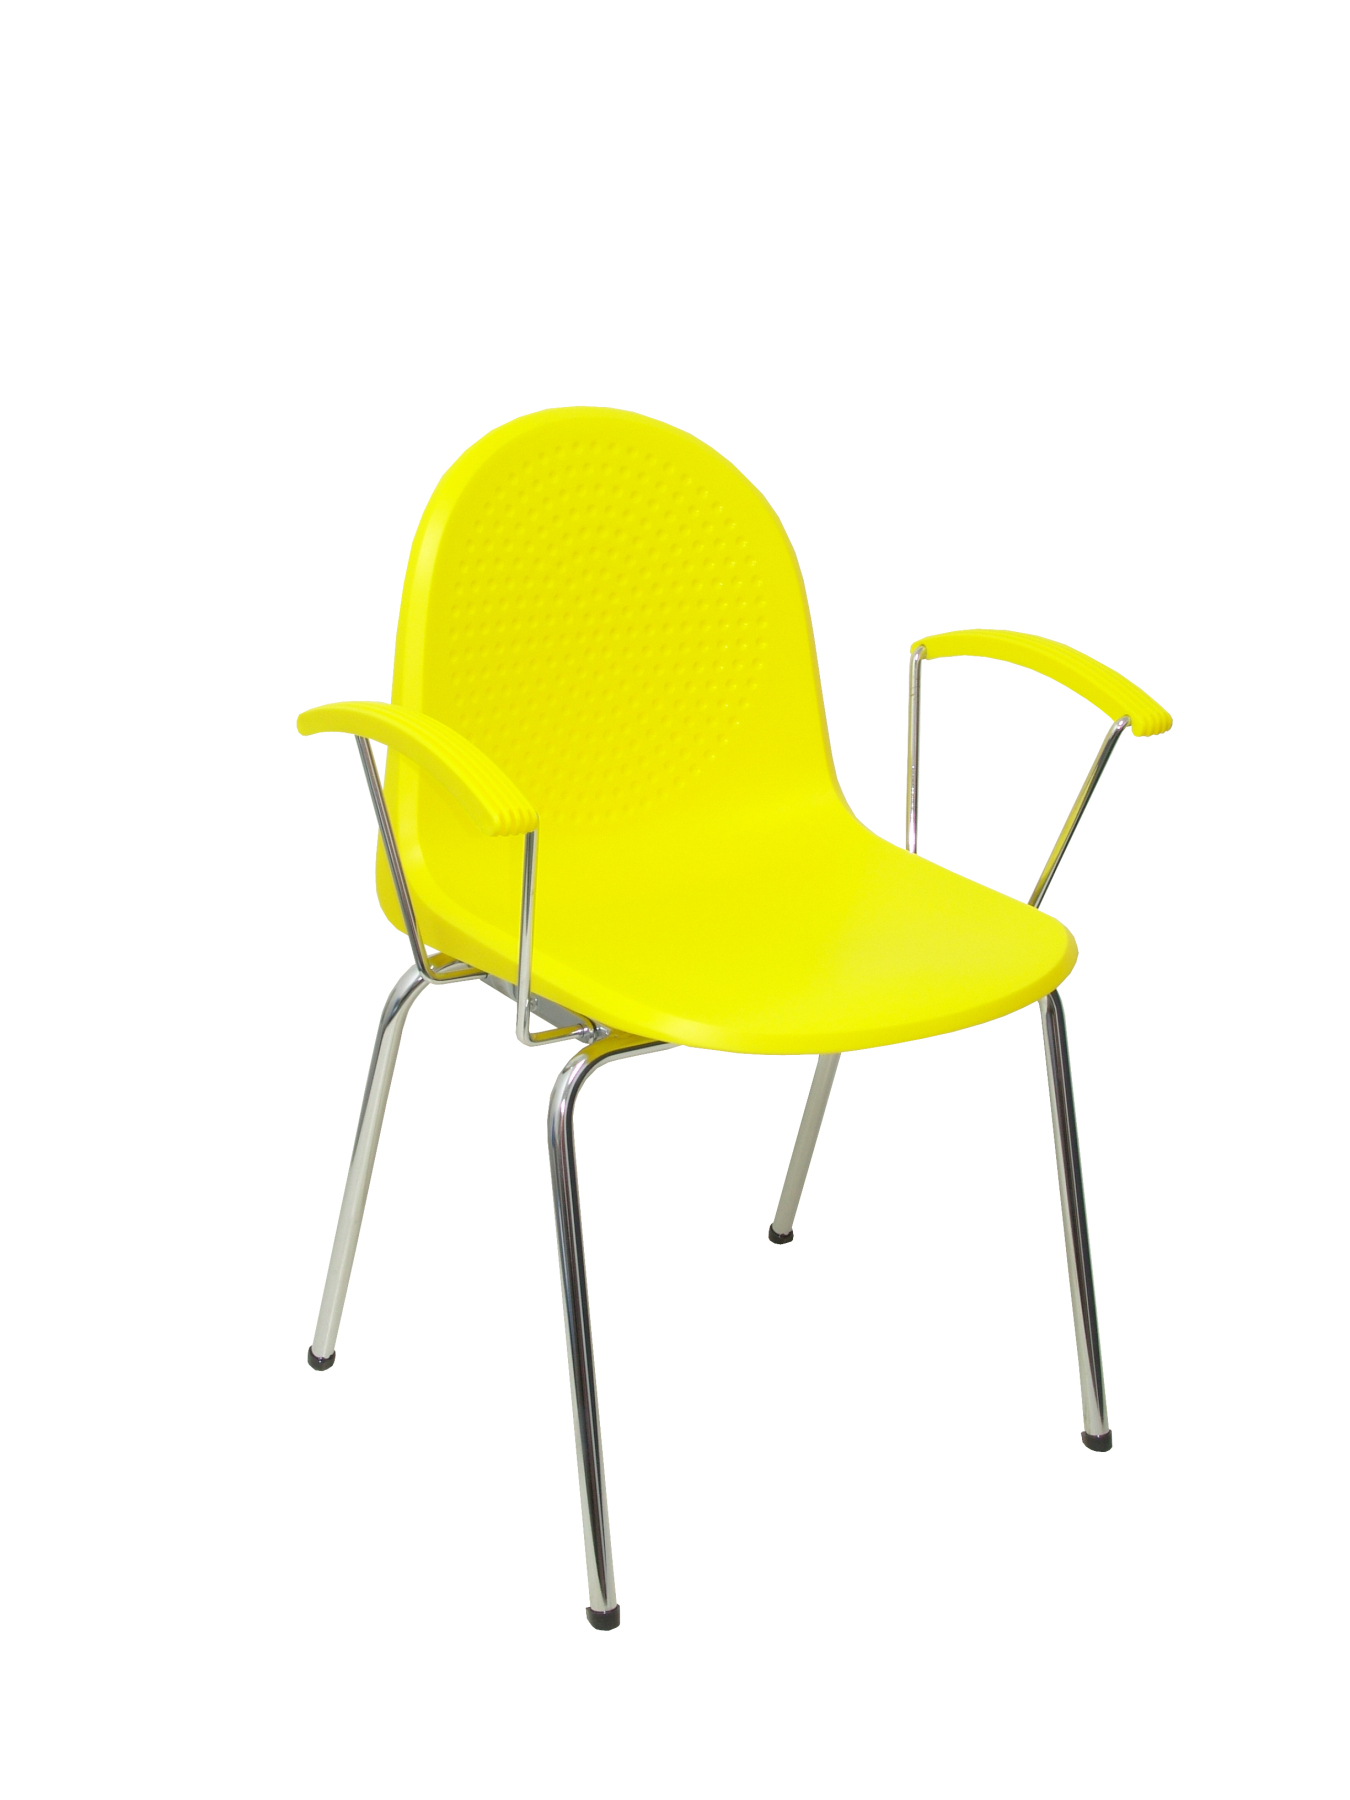 Pack 4 Chairs Confident Ergonomic With Fixed Arms Chrome And Structure Chrome Seat And Backrest Plastic